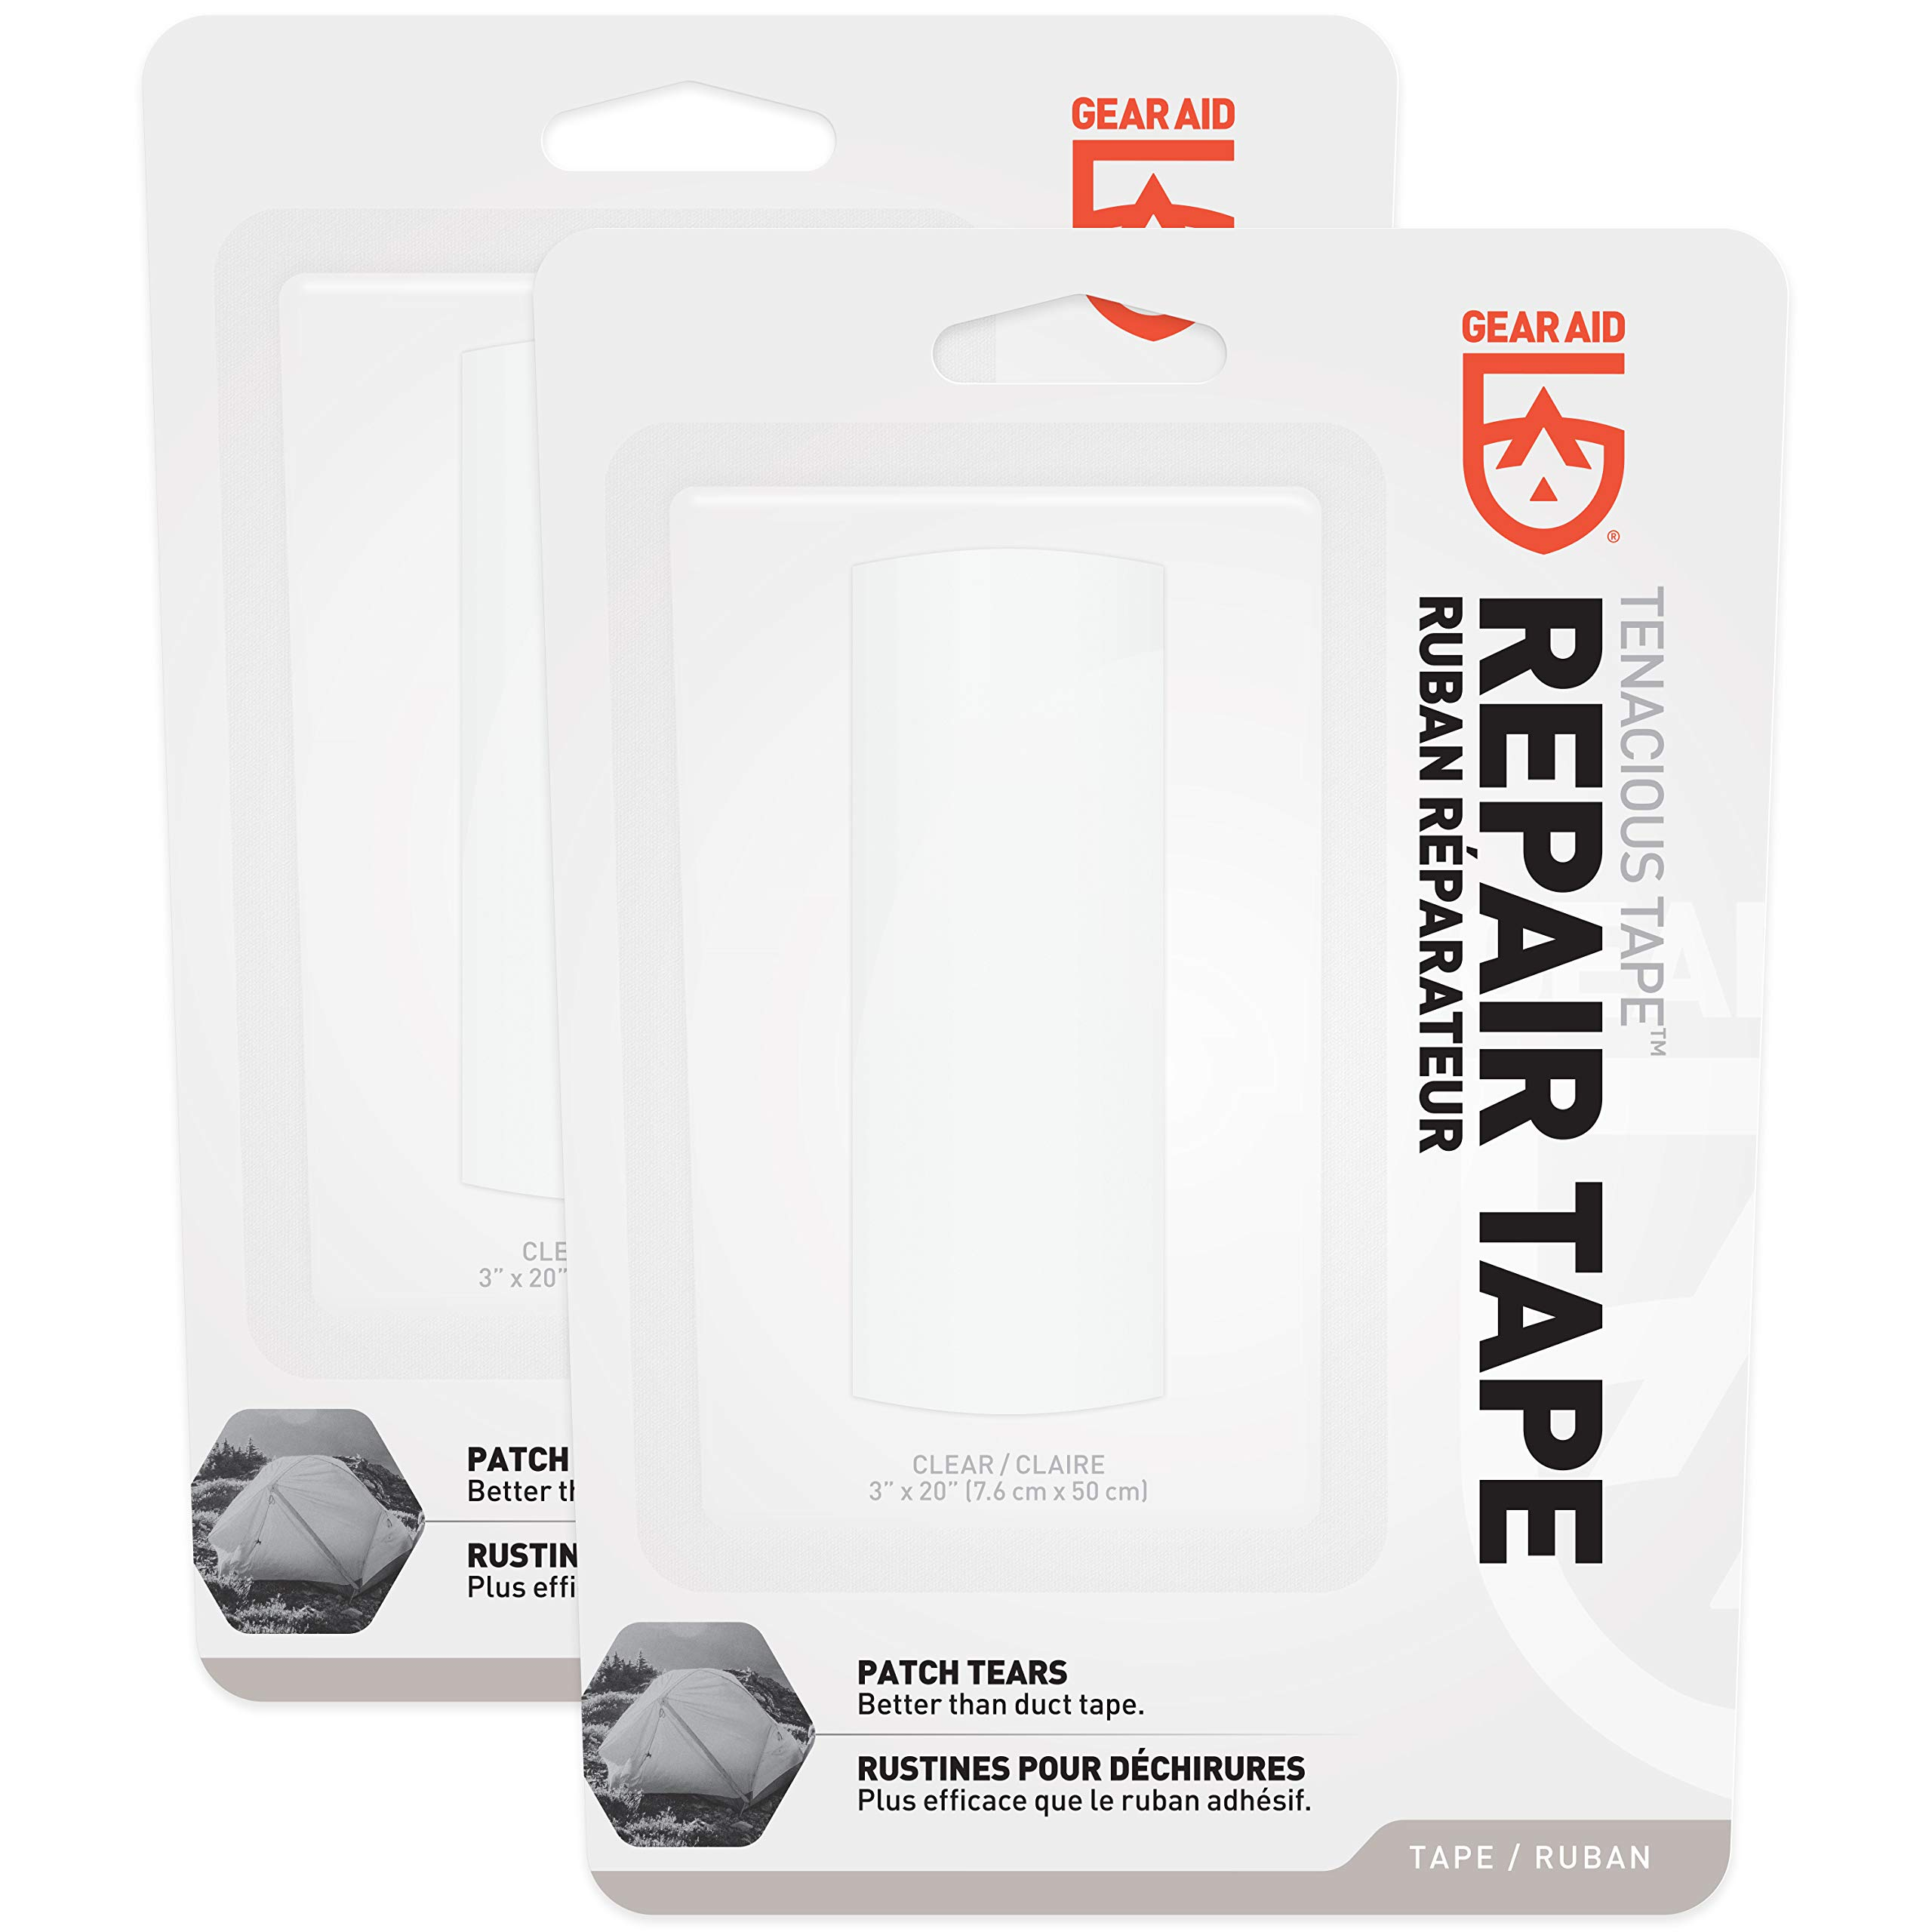 """Gear Aid Tenacious Tape Repair Tape for Fabric and Vinyl, 3"""" x 20""""(2 pack) by Gear Aid (Image #2)"""